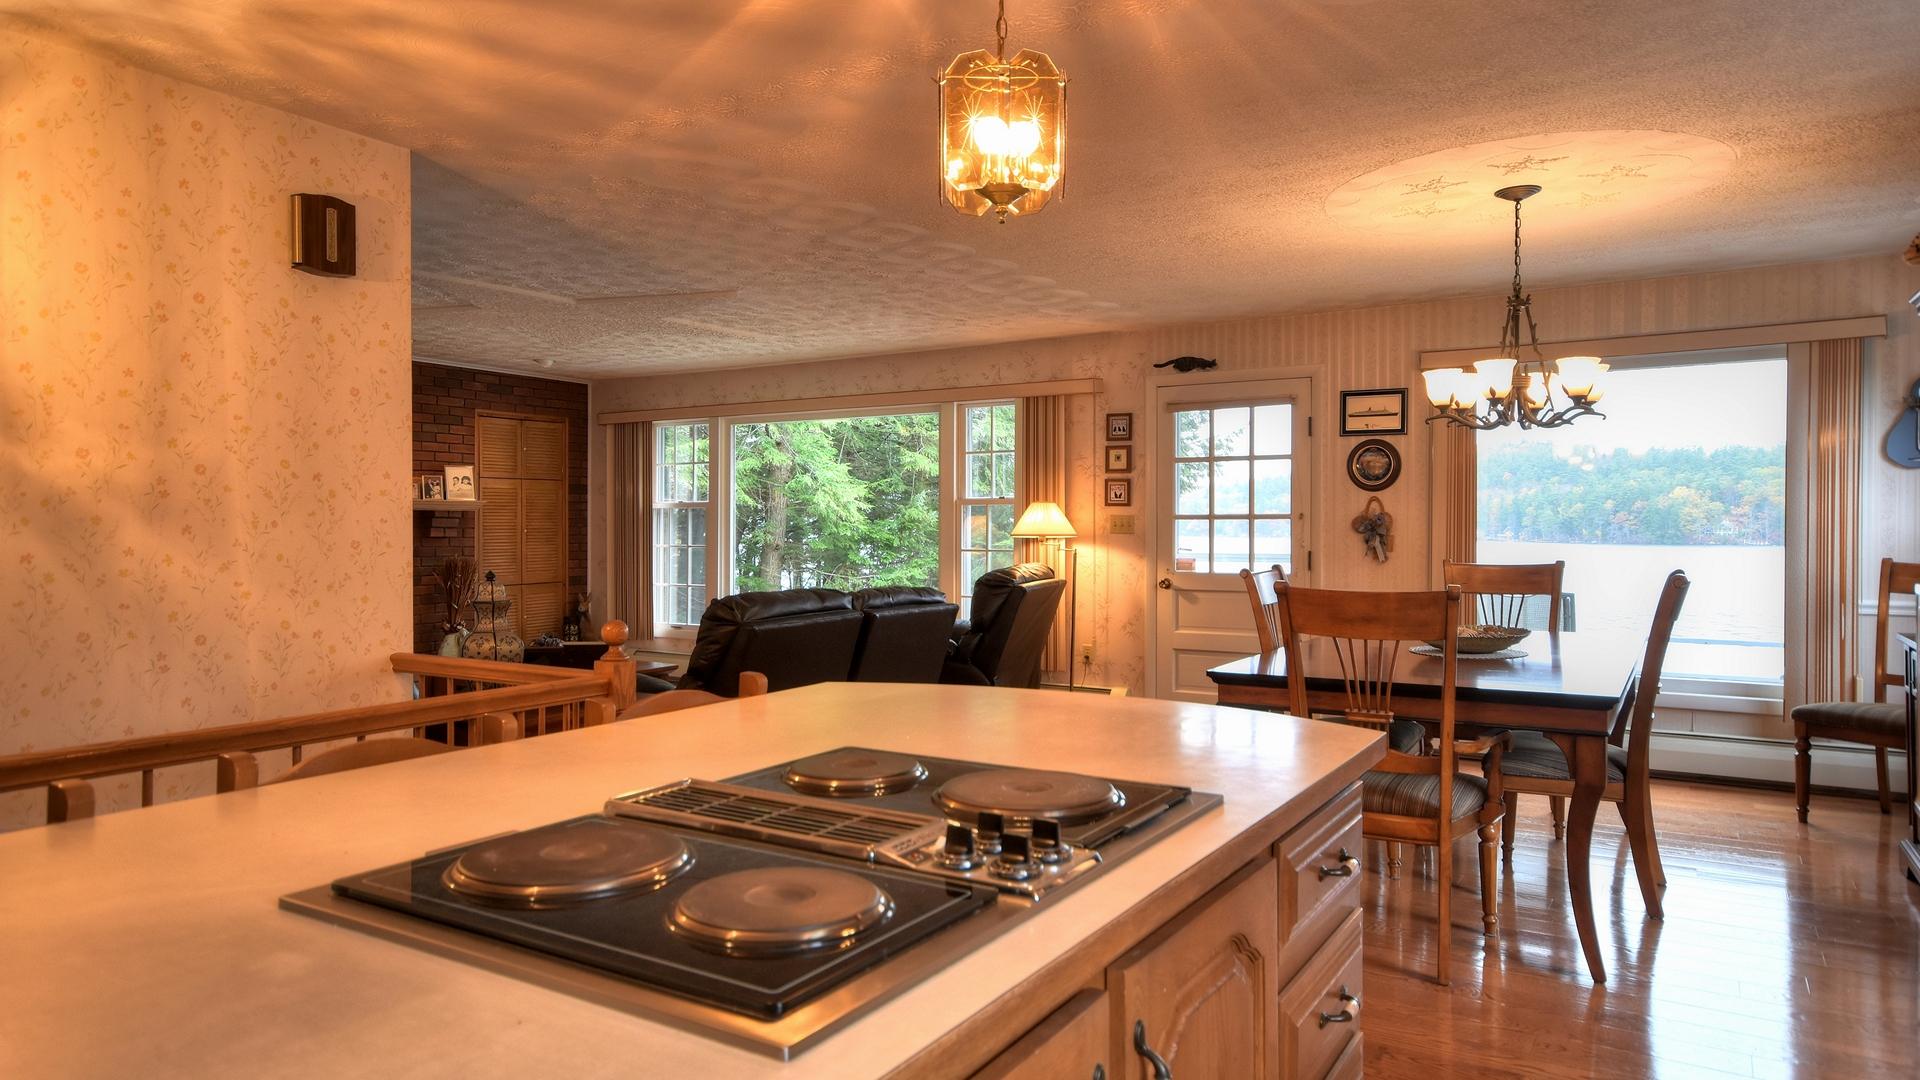 Additional photo for property listing at Lake Winnipesaukee waterfront home 1 Garden Park Alton, New Hampshire 03810 United States